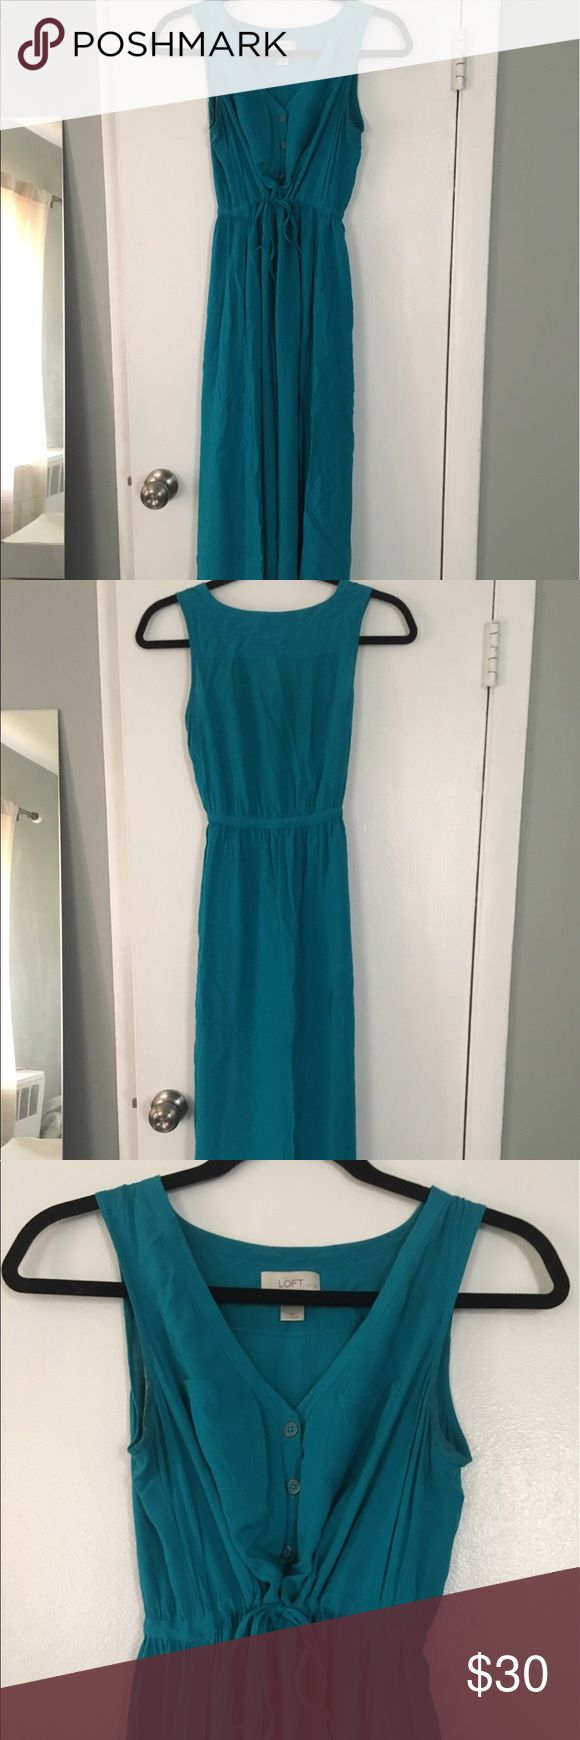 Teal Maxi Dress I may have worn this dress once. The dress is a pretty teal color and soft material - super comfortable. A few buttons down the front, with a tie waste. Has pockets! Since it's a 0P, it measures approximately 49 inches from shoulder. LOFT Dresses Maxi